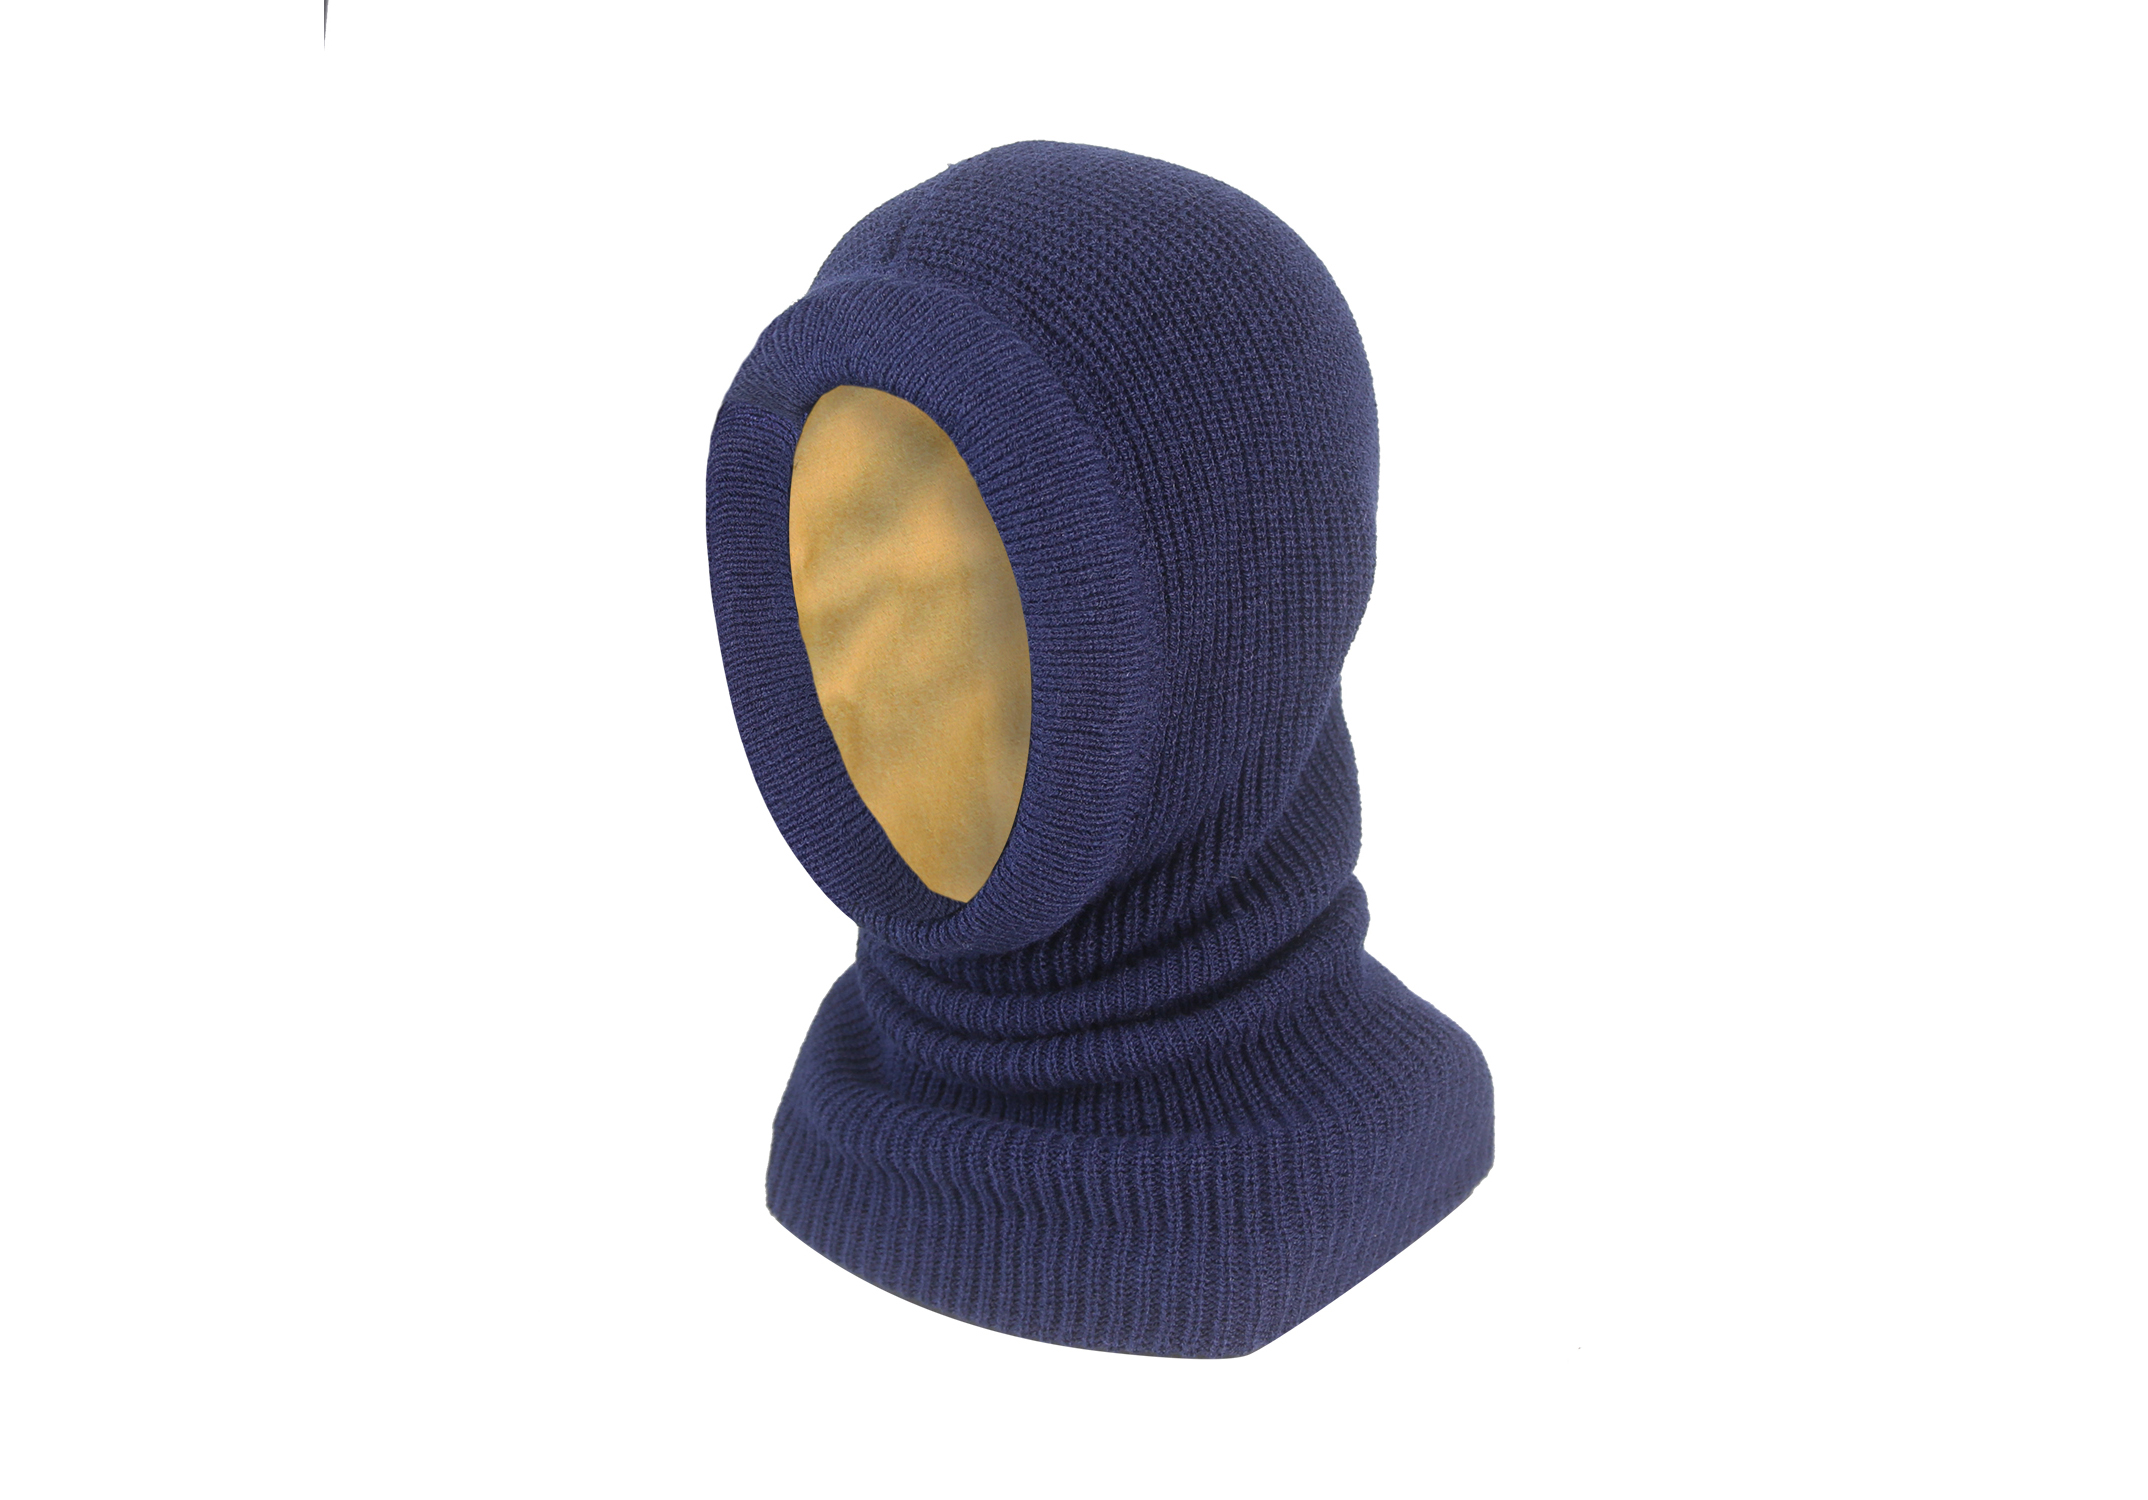 Acrylic Balaclava with 3M Thinsulated liner/WKH-06-N